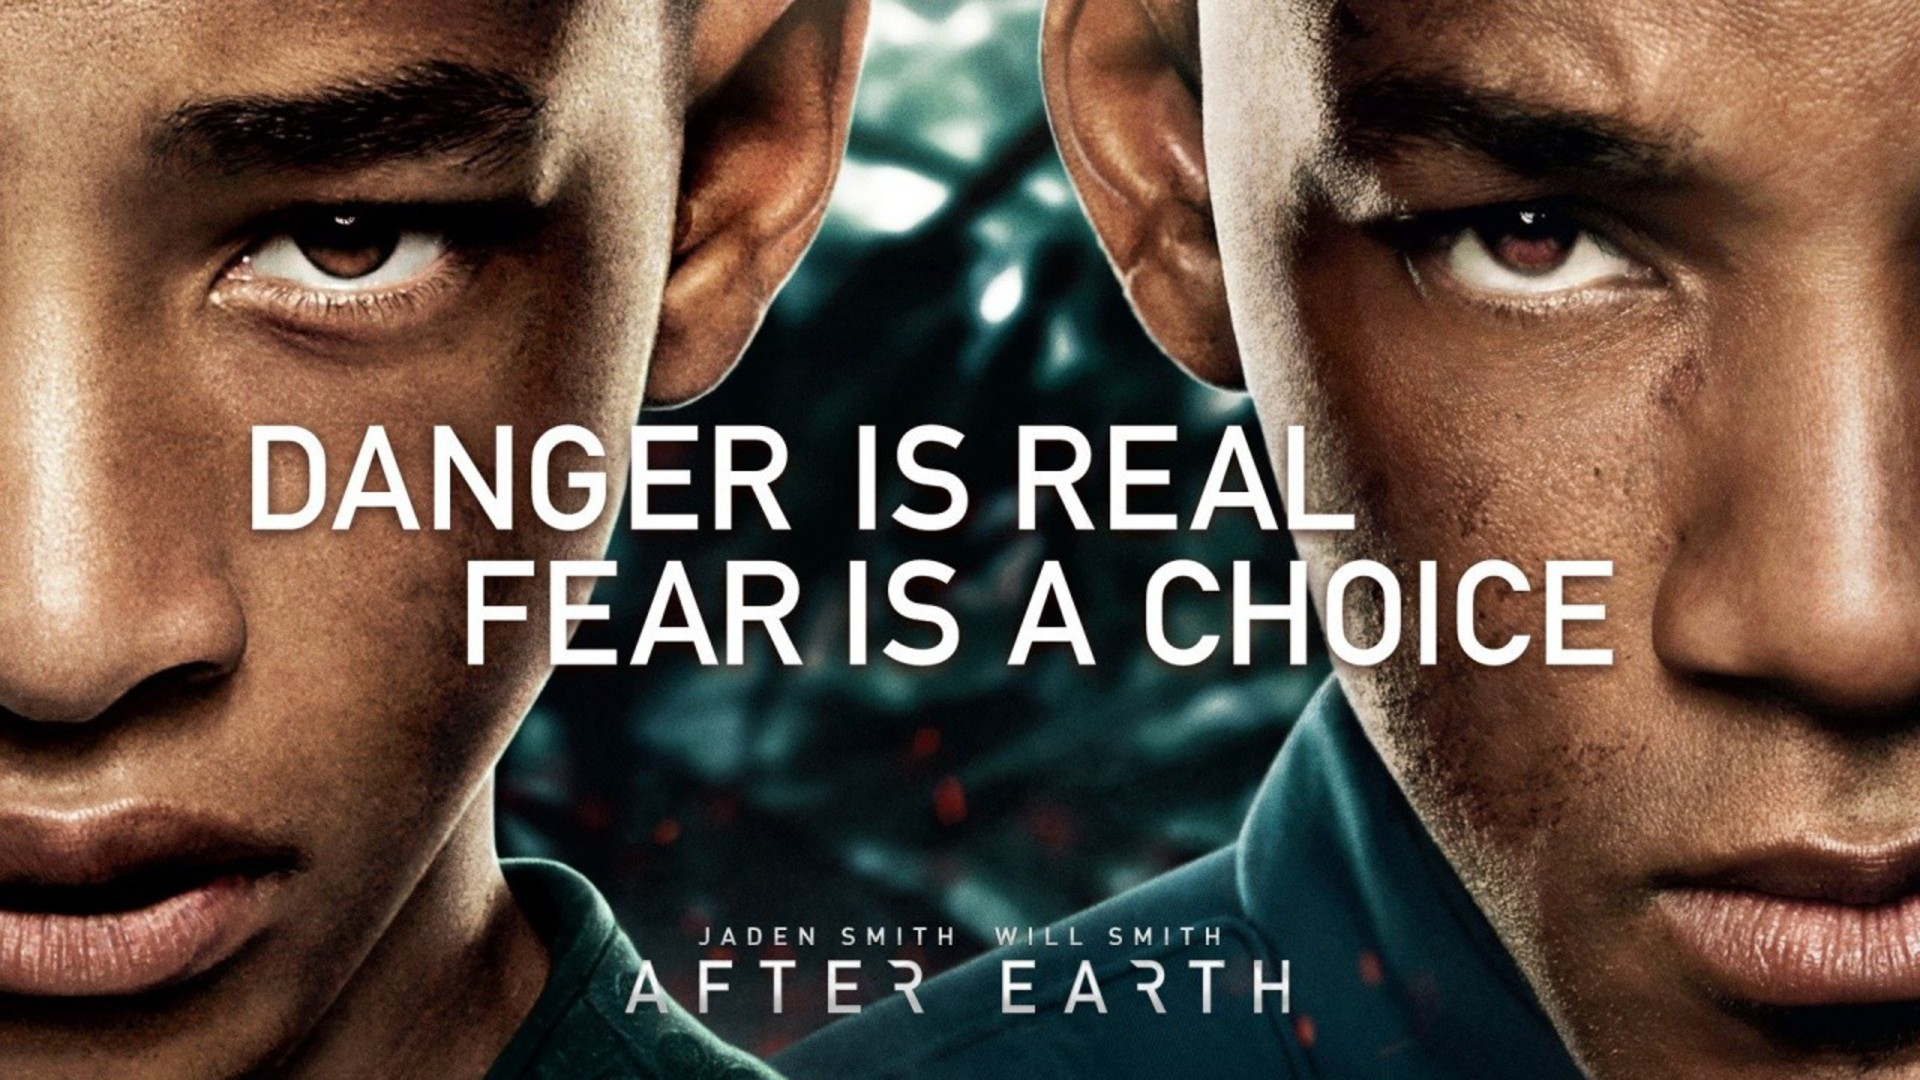 Movies quotes will smith jaden theater after earth wallpaper 1920x1080